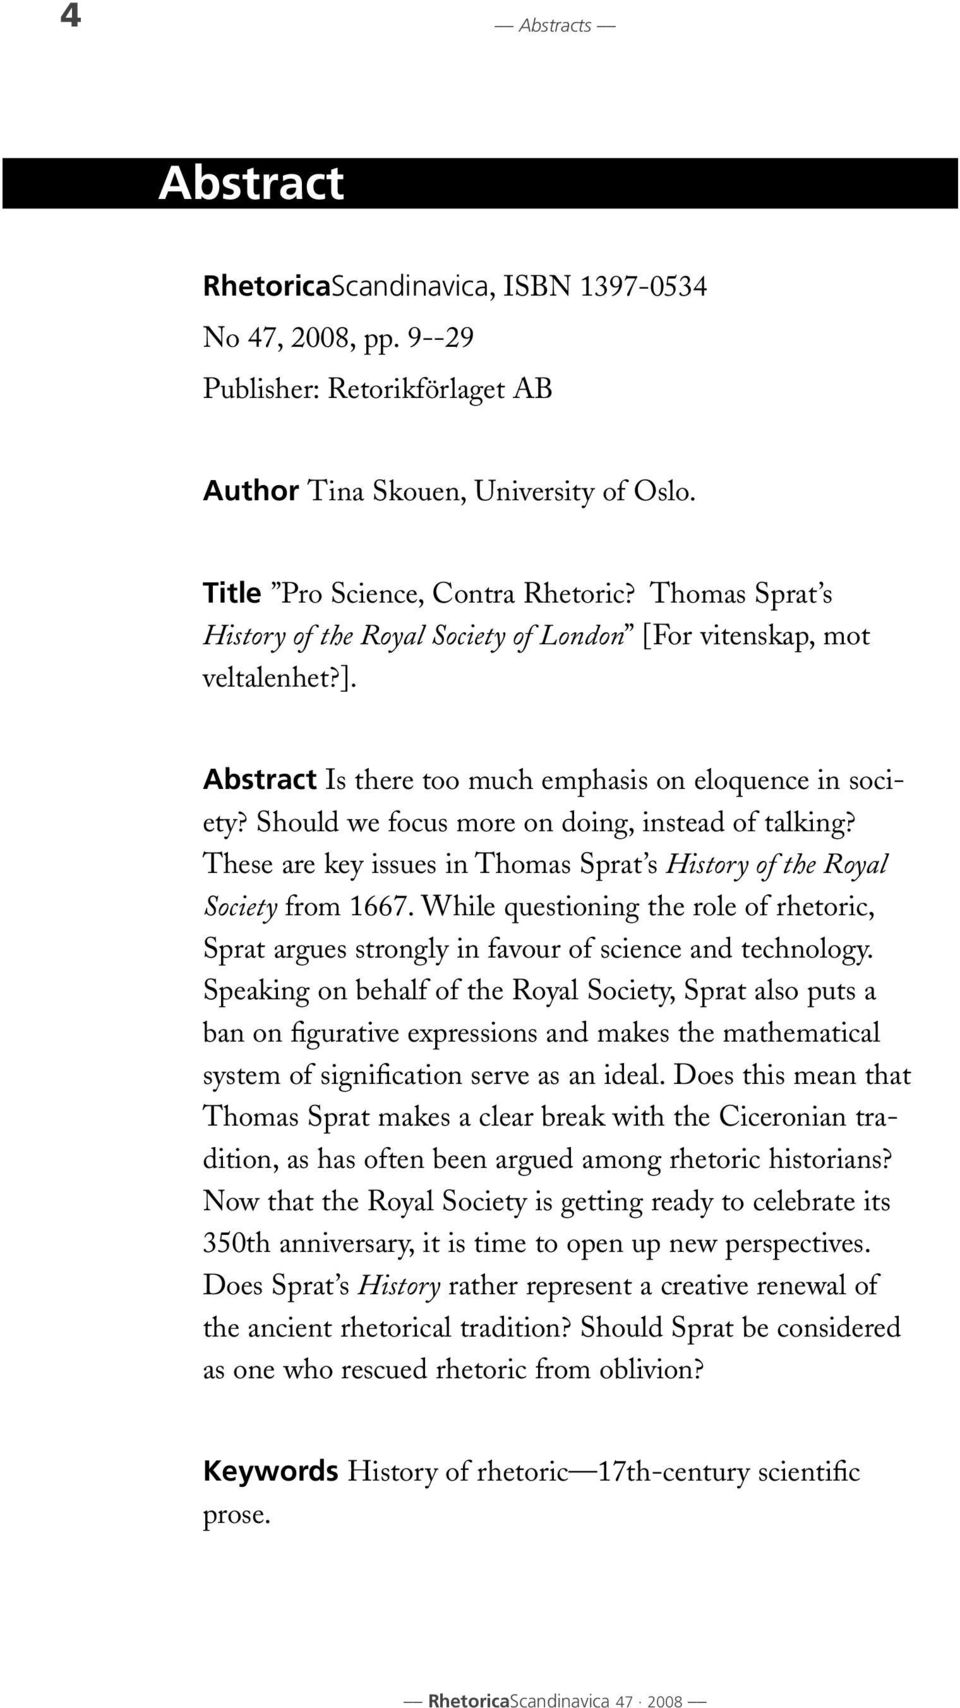 These are key issues in Thomas Sprat s History of the Royal Society from 1667. While questioning the role of rhetoric, Sprat argues strongly in favour of science and technology.